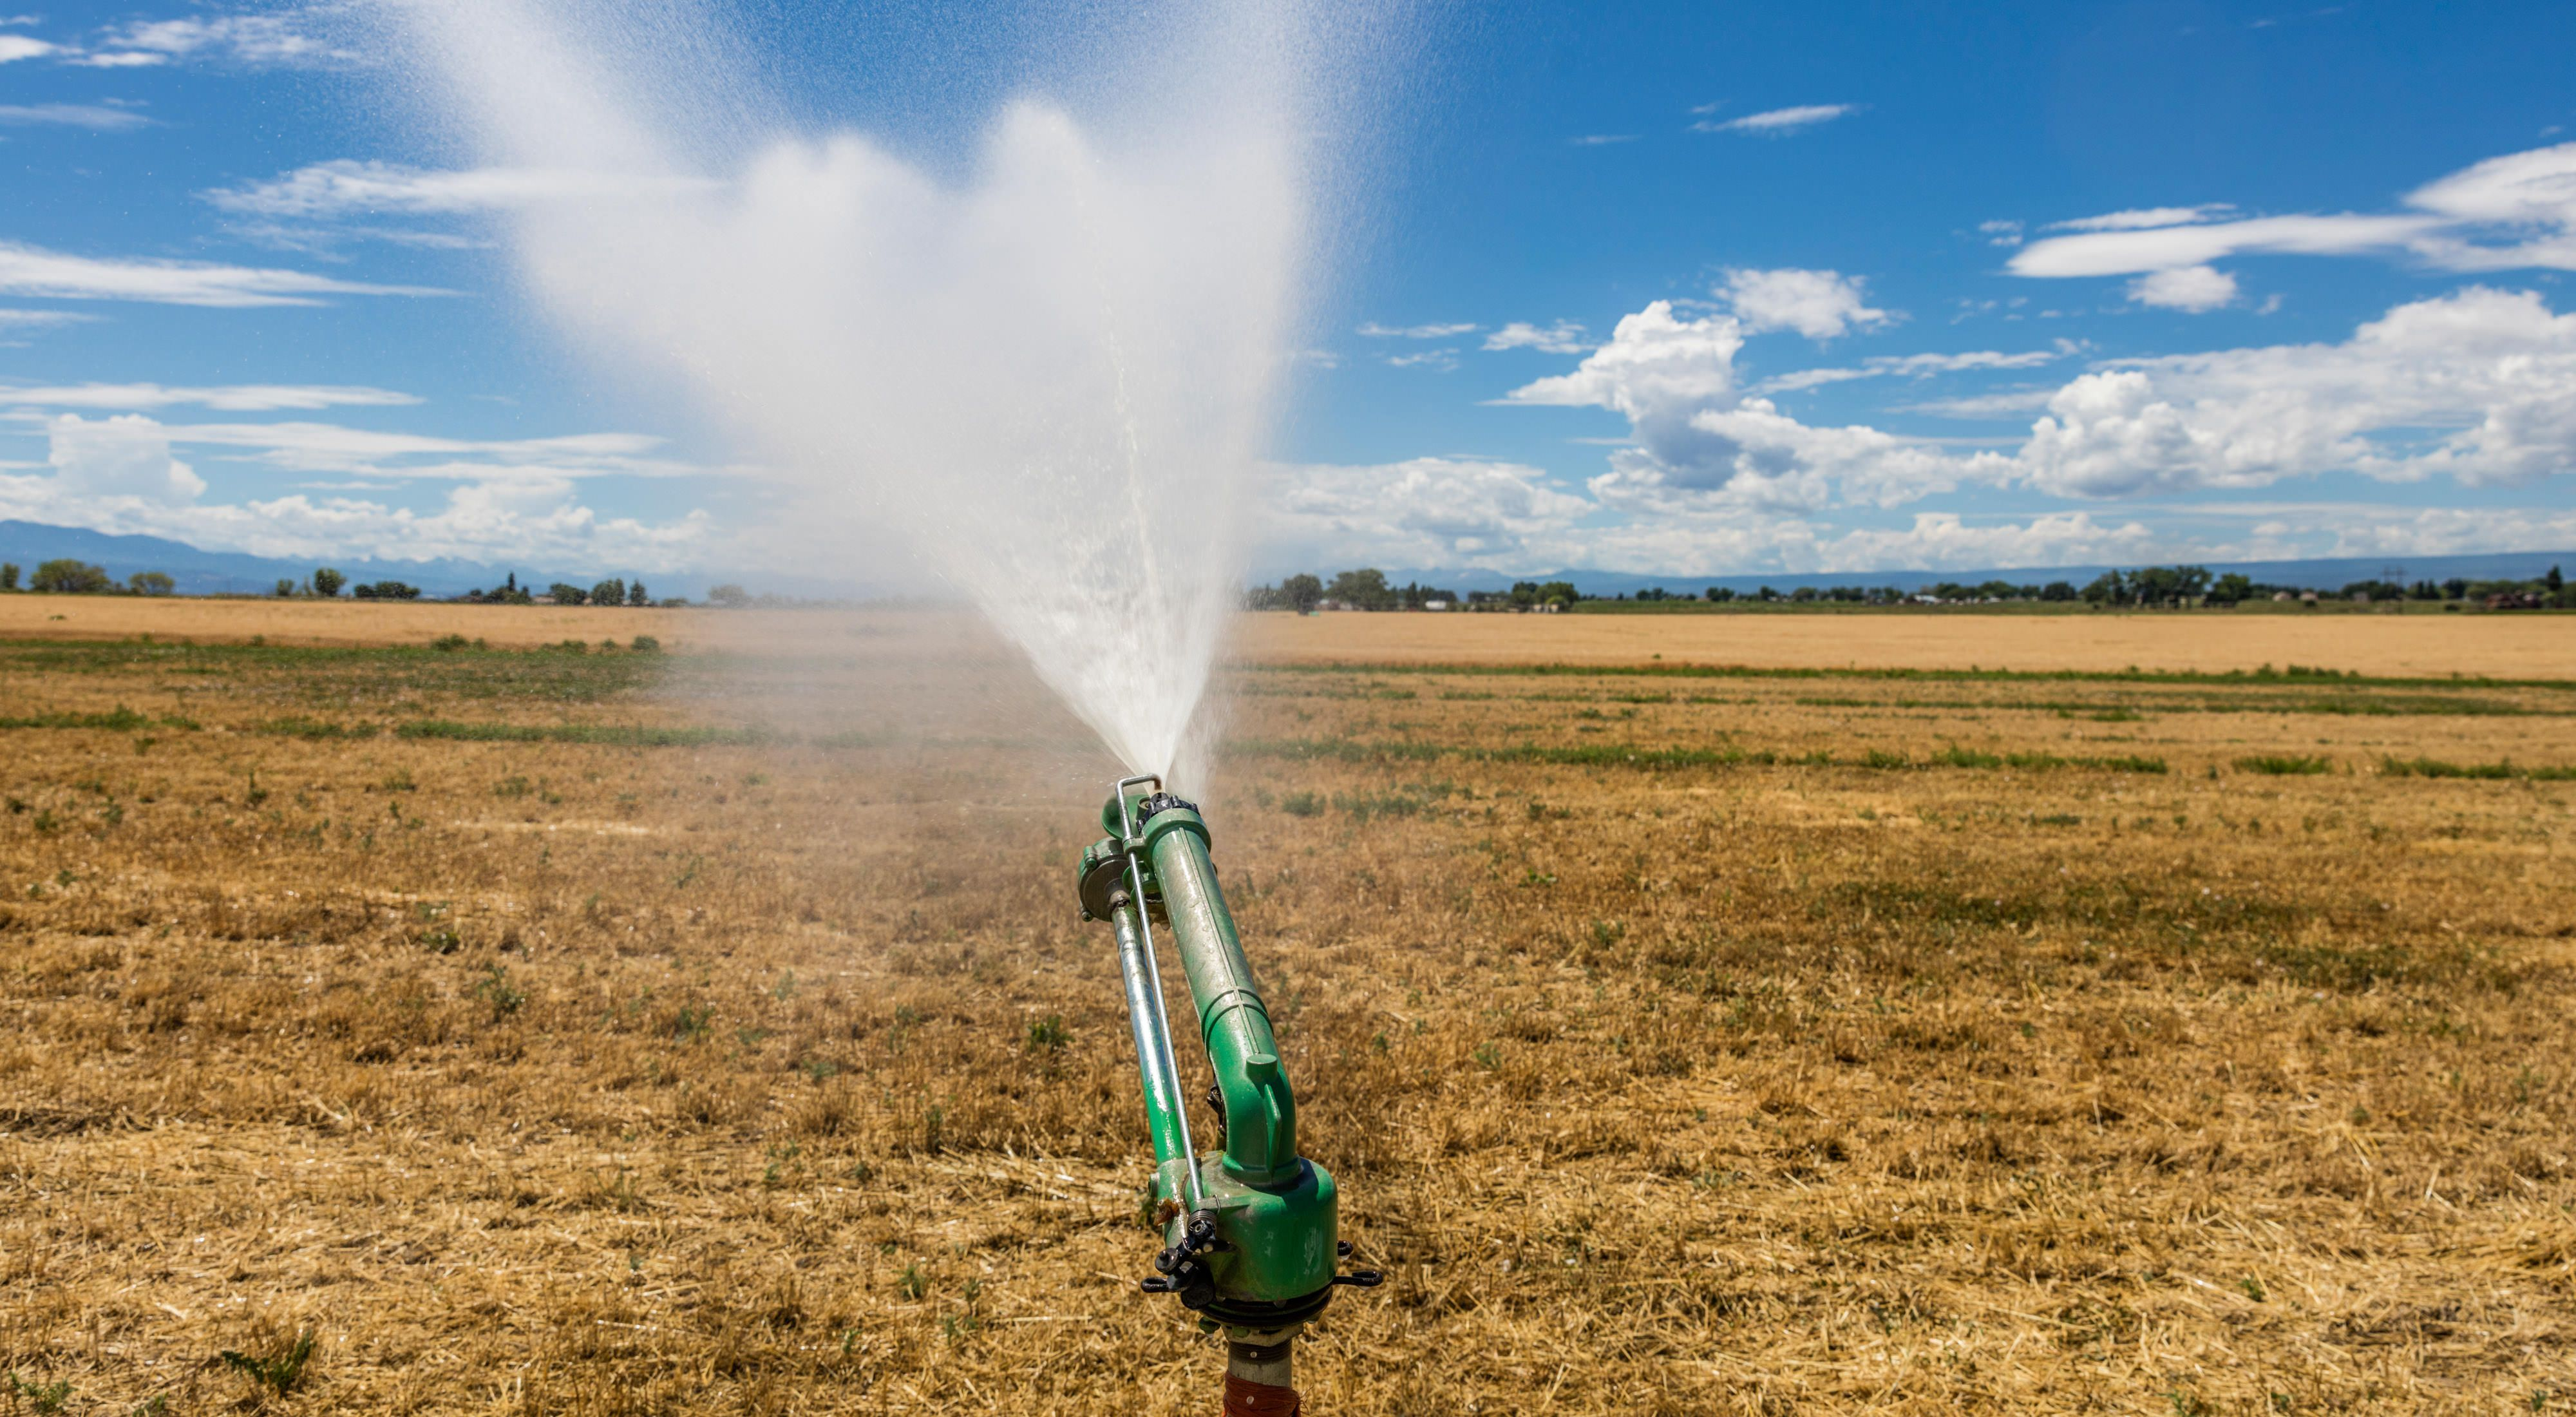 A large, green sprinkler sprays water over a brown fiel